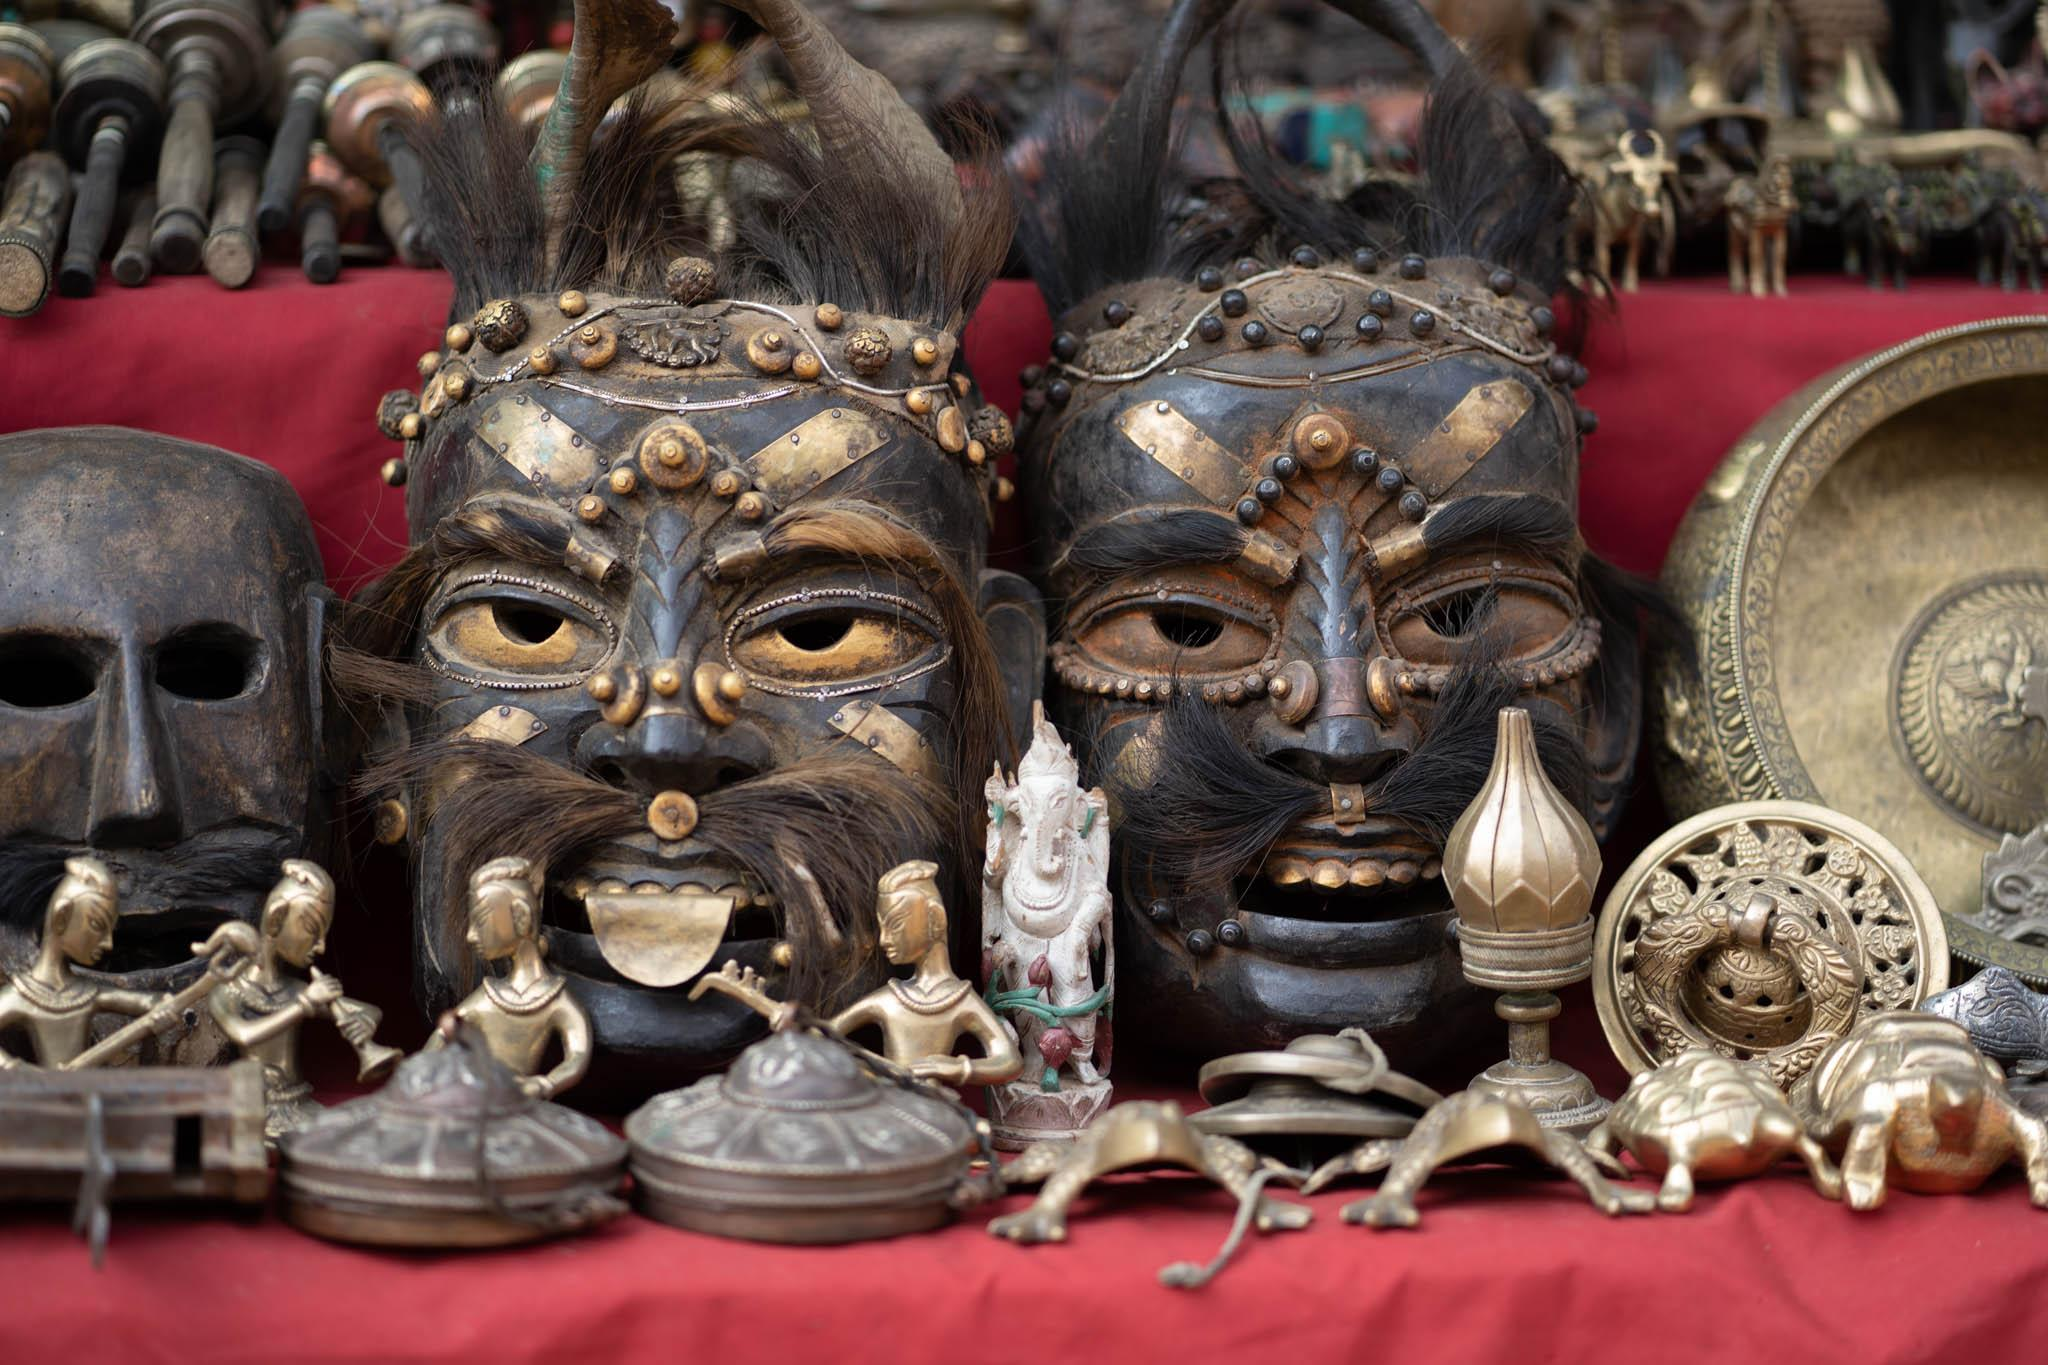 Masks and ornaments from a Nepalese shop